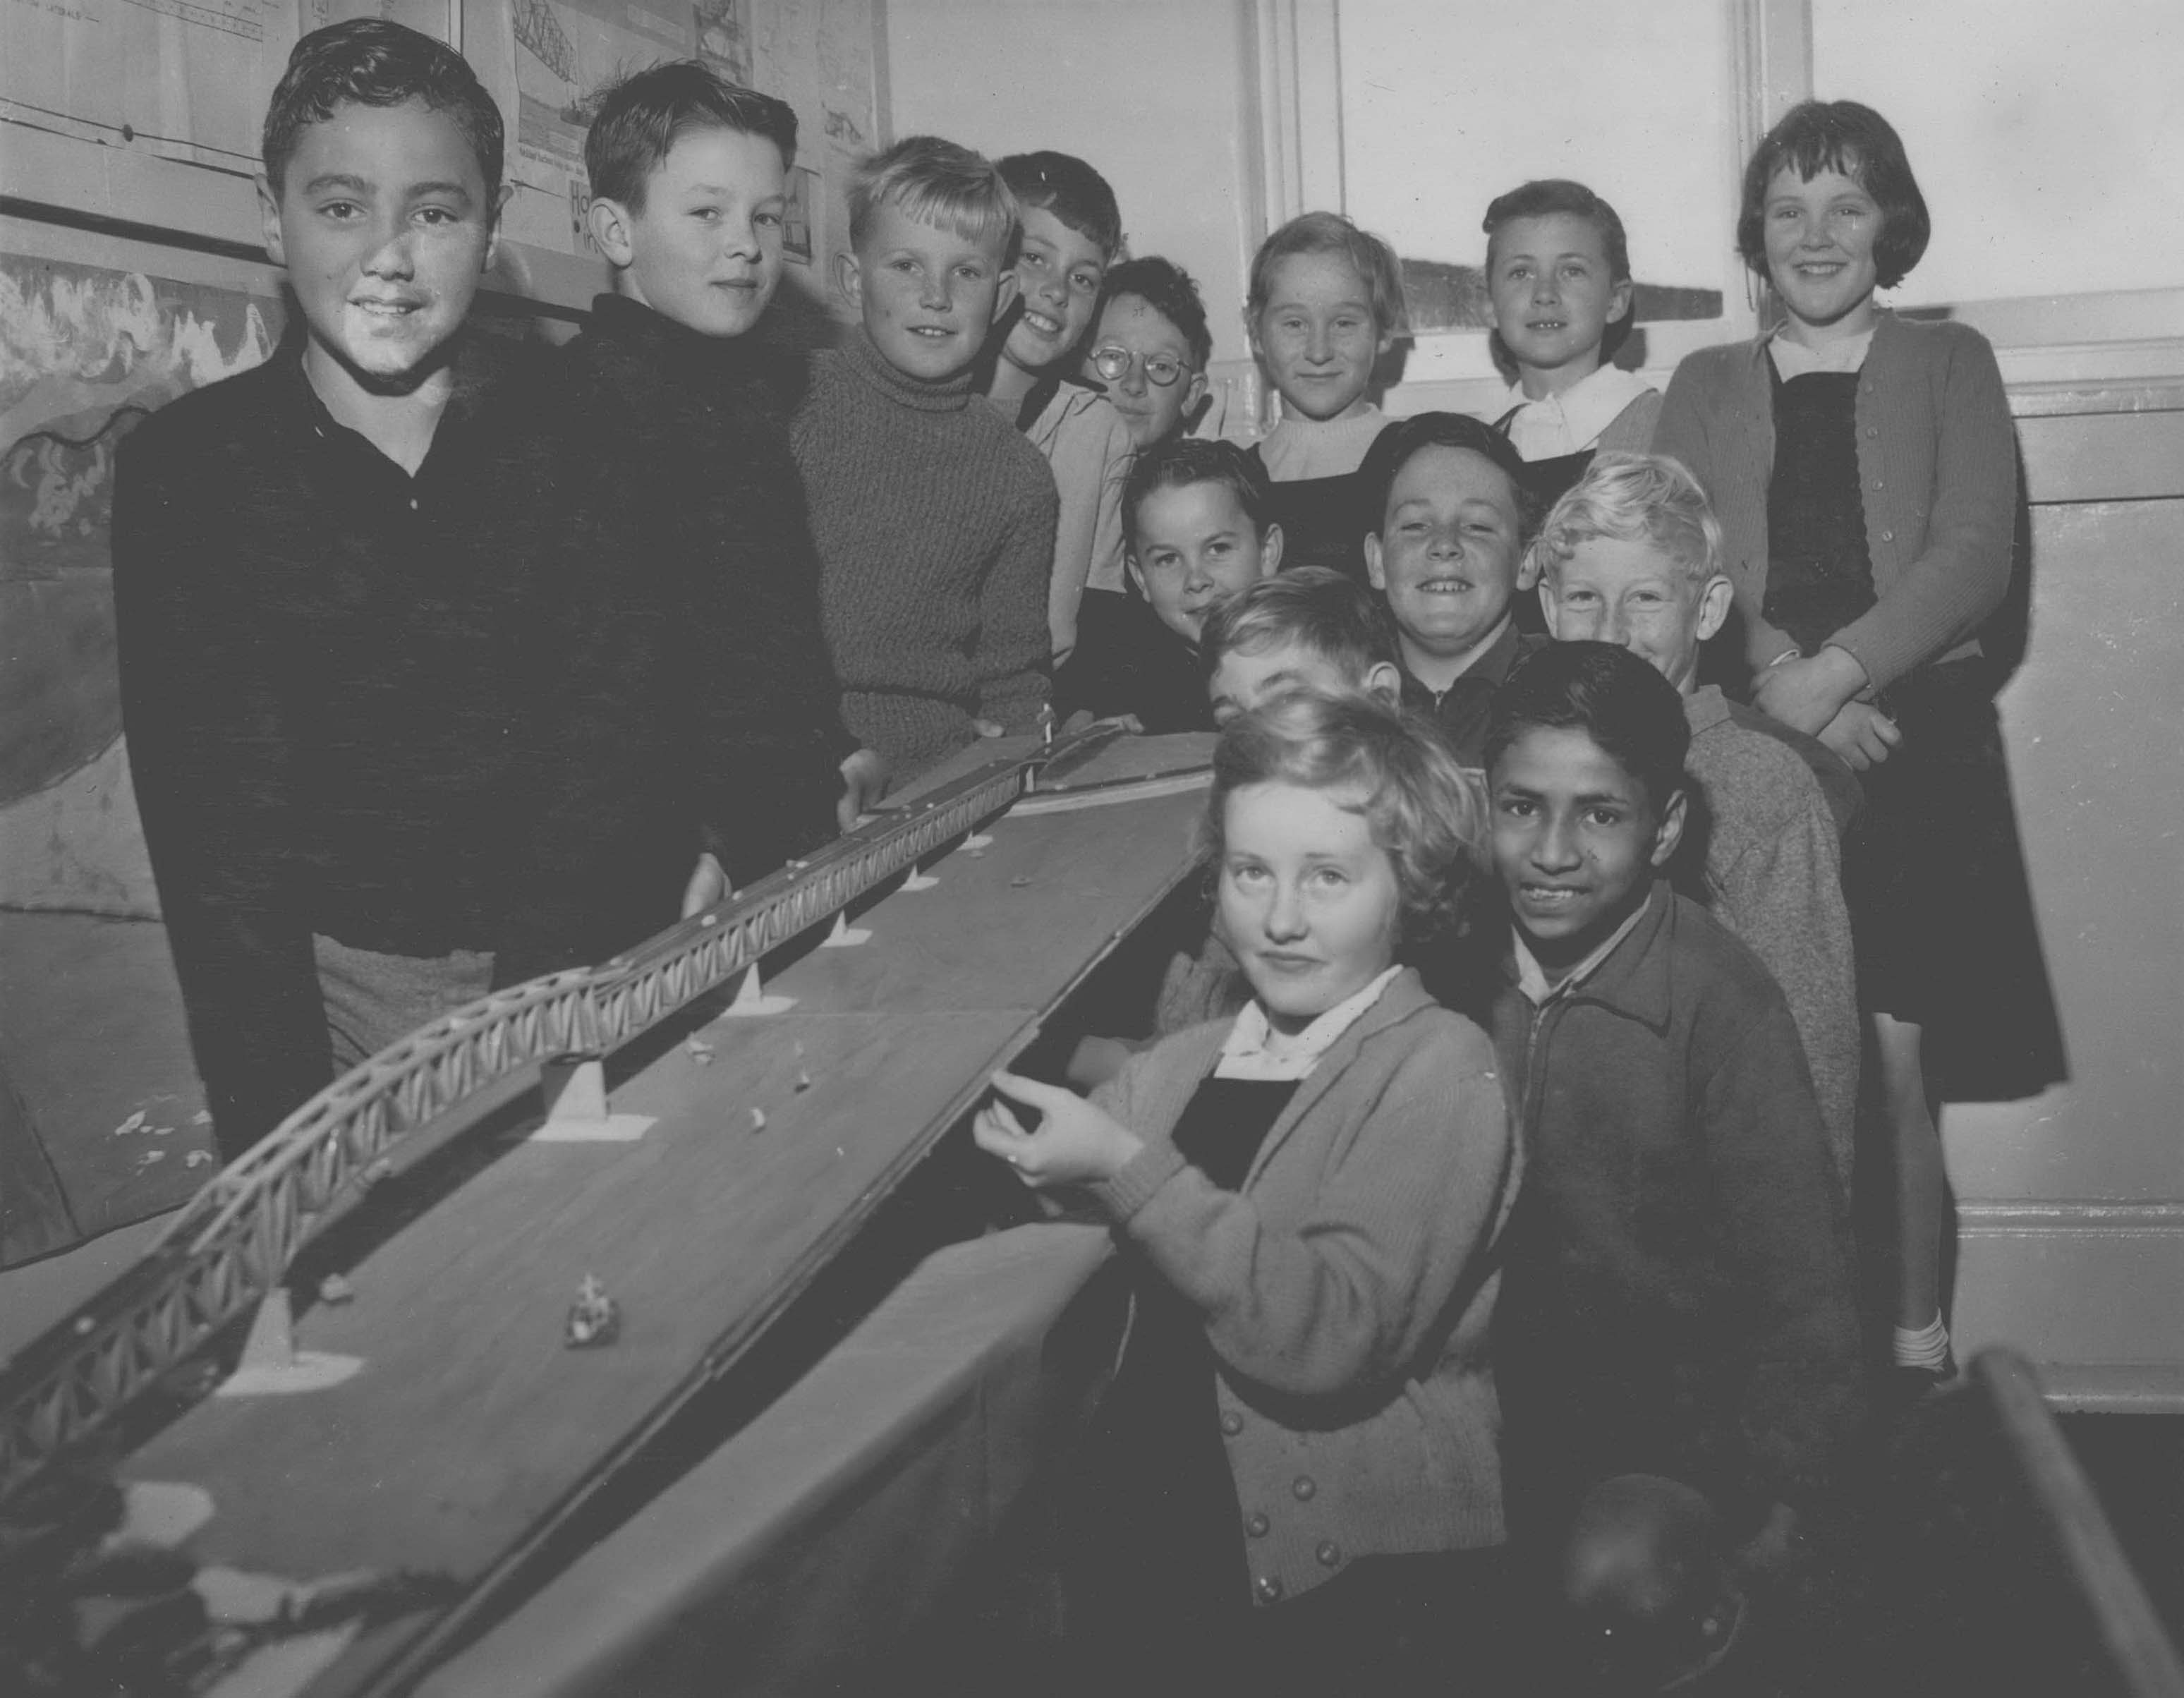 Pupils of the school pose with model of the bridge